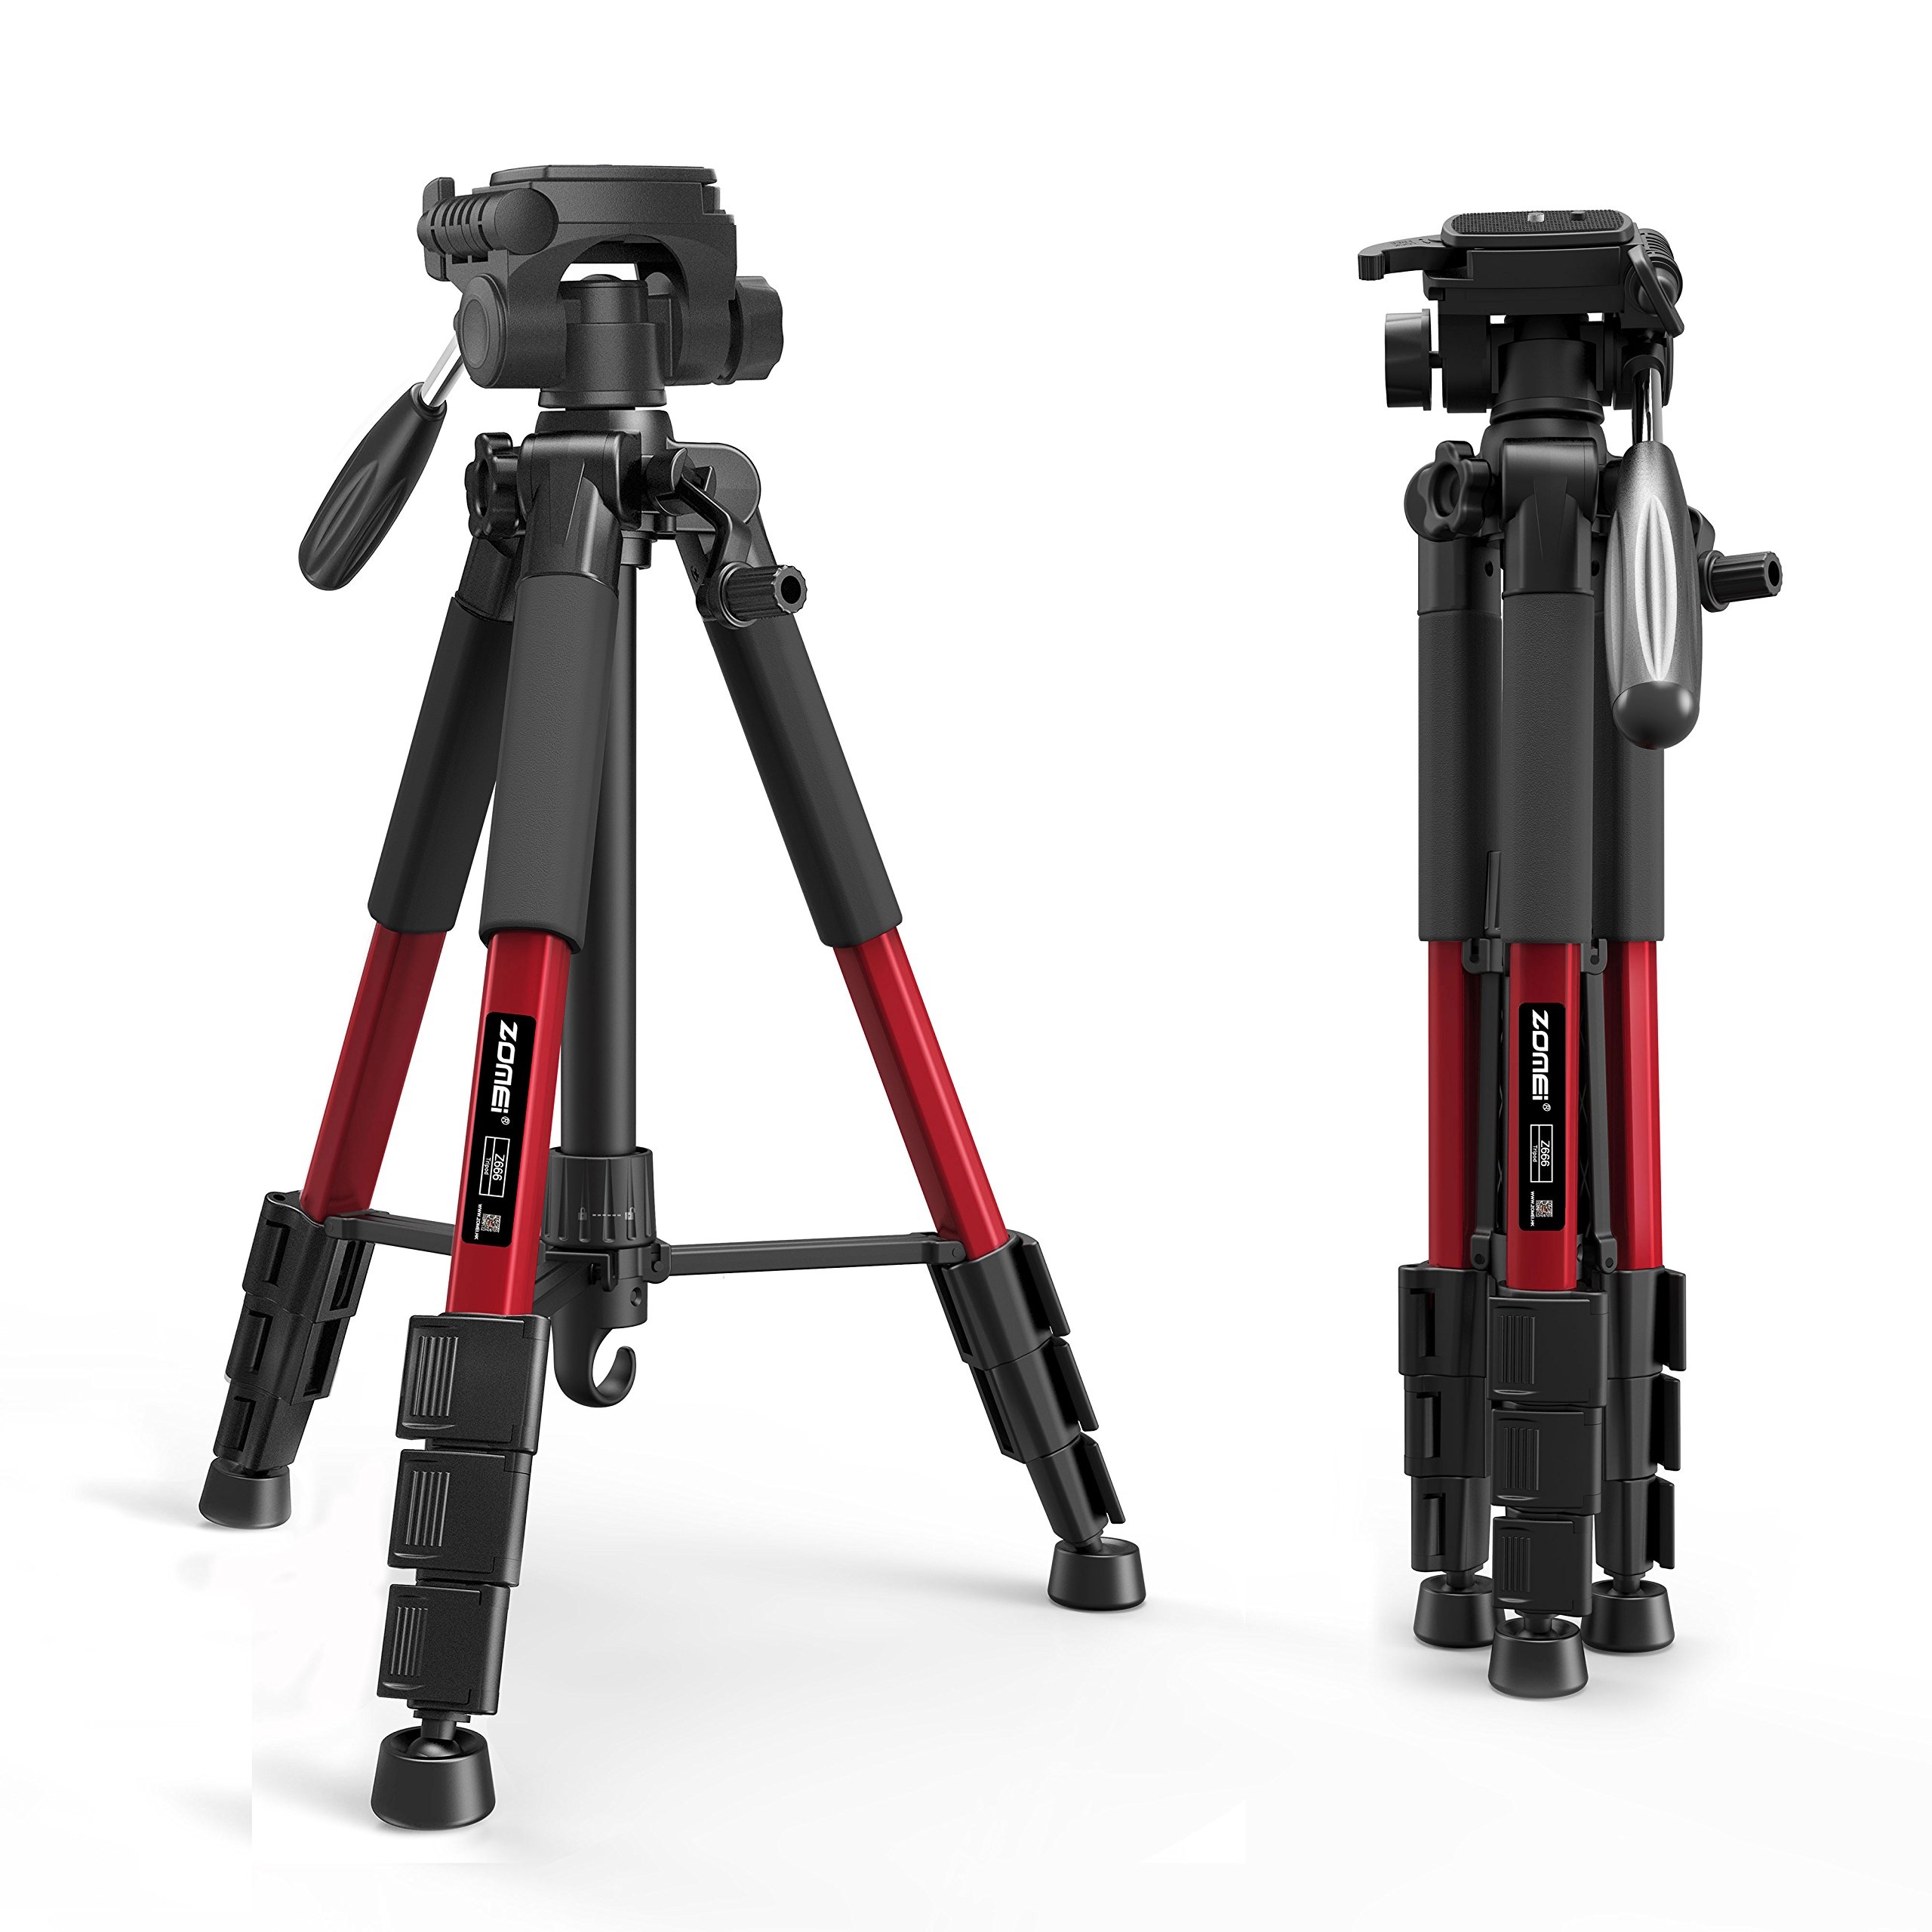 ZOMEI Z666RED Camera Compact Travel Tripod with Pan Head and Quick Release Plate, Aluminum Lightweight Camera Tripod with Carry Case for Canon Sony Nikon DSLR Cameras, Red